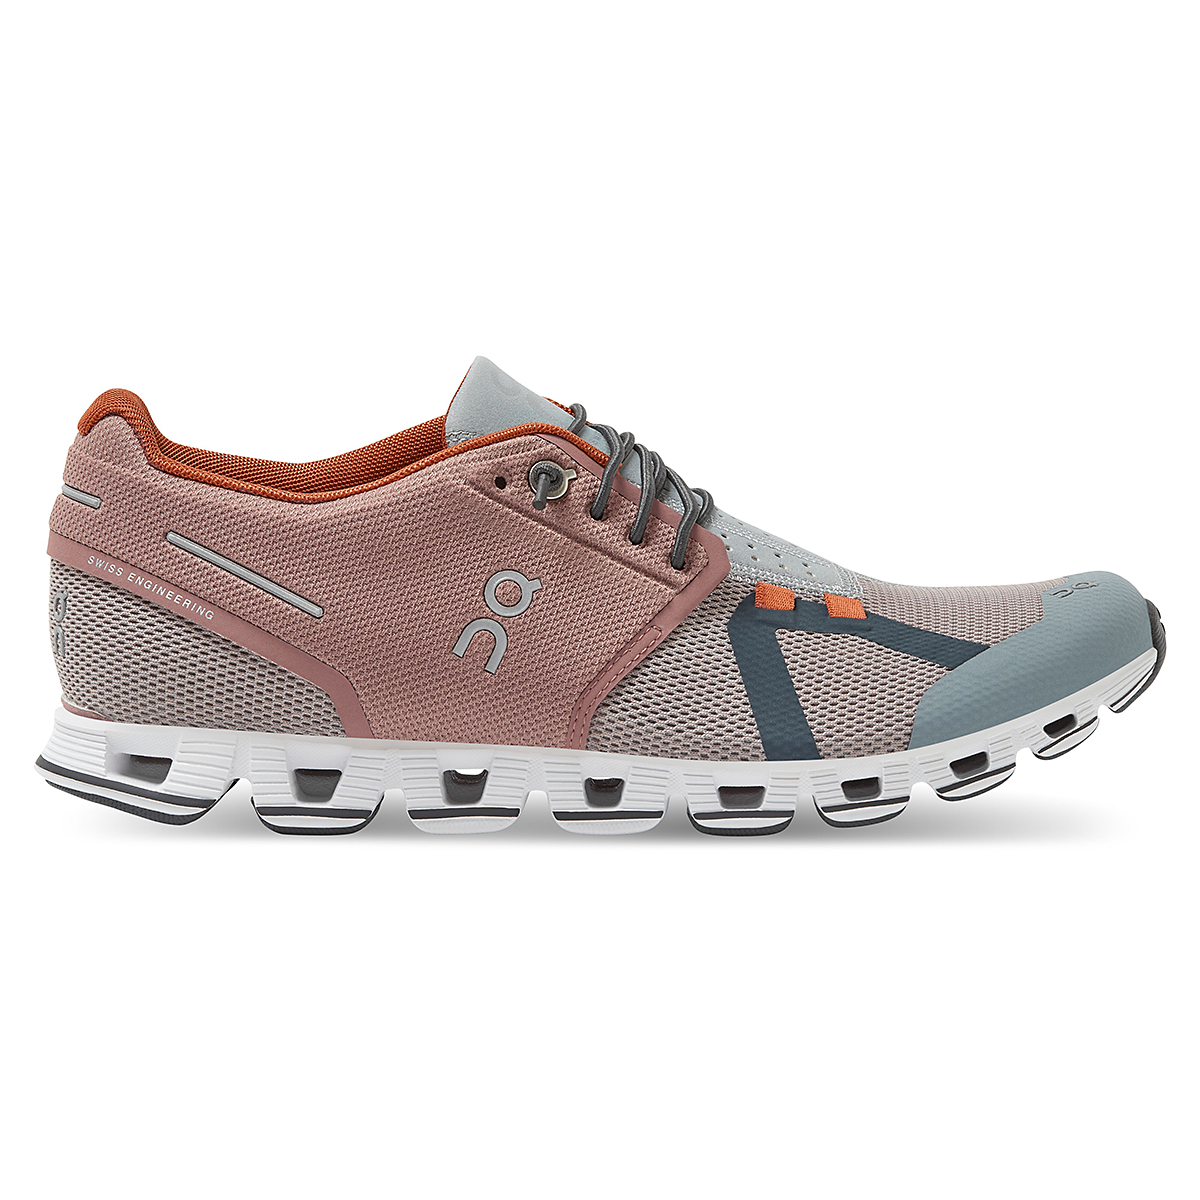 Women's On Cloud 70/30 Lifestyle Shoe - Color: Reed/Damson - Size: 5 - Width: Regular, Reed/Damson, large, image 1